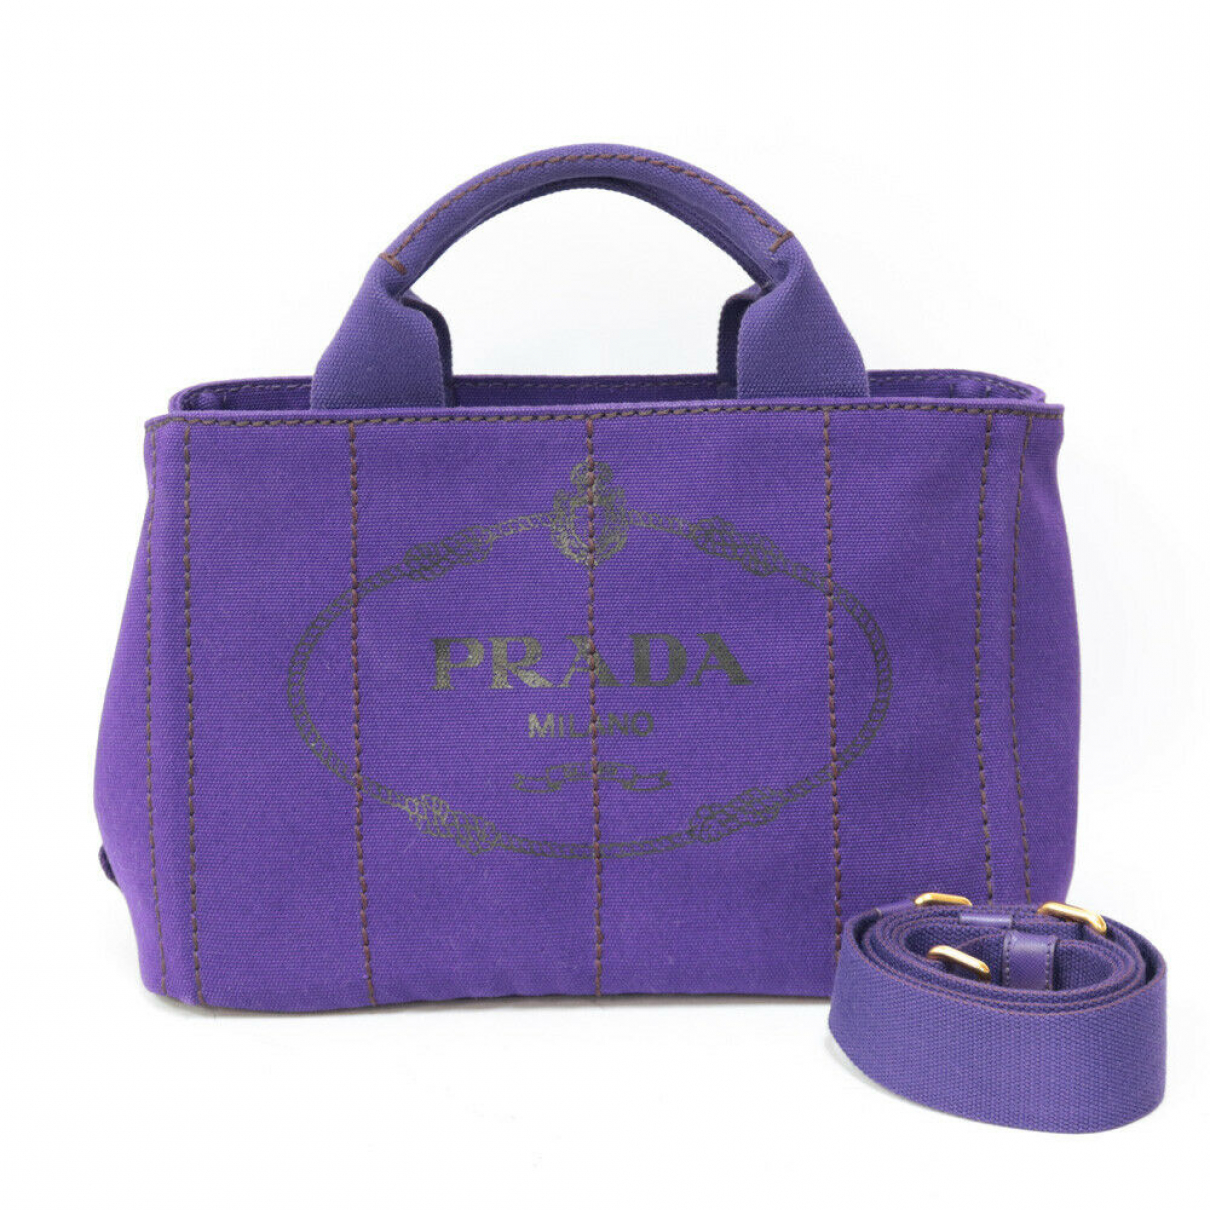 Prada N Purple Leather handbag for Women N